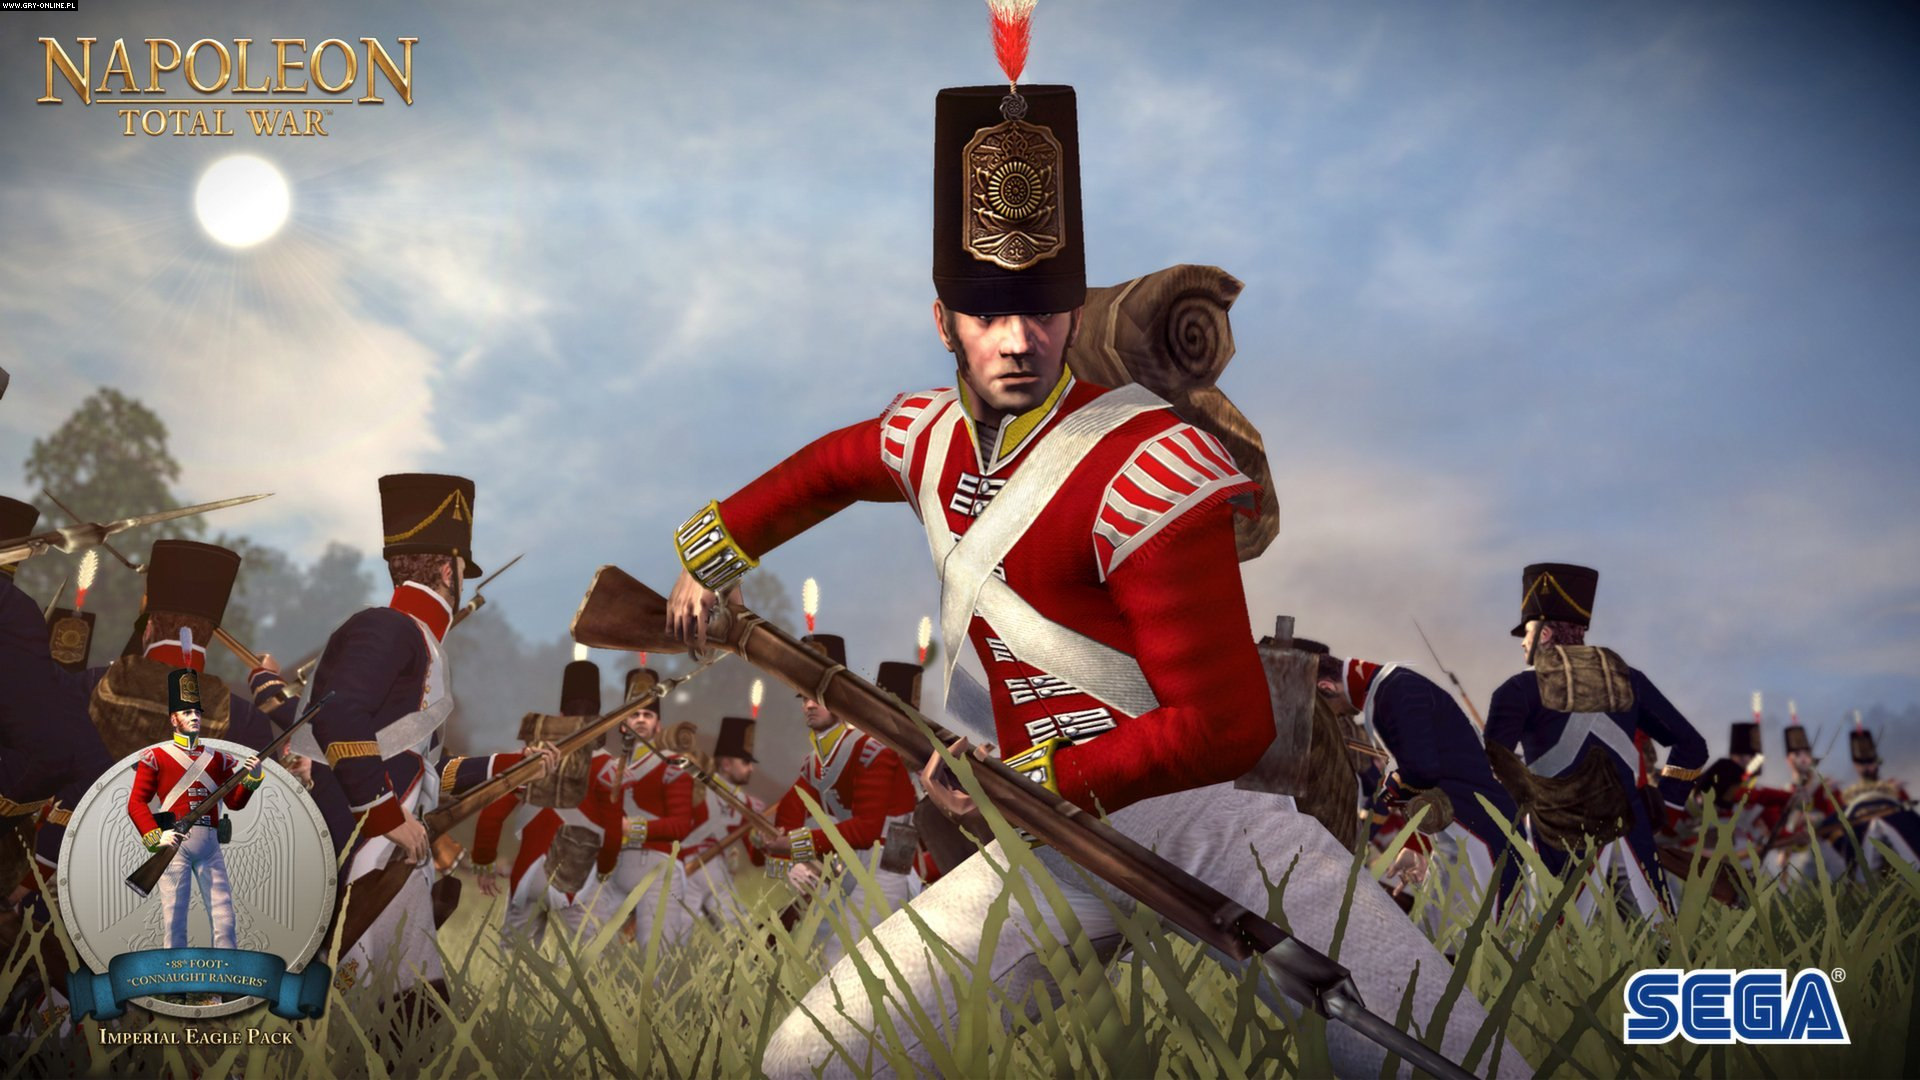 Napoleon: Total War PC Gry Screen 6/100, Creative Assembly, SEGA